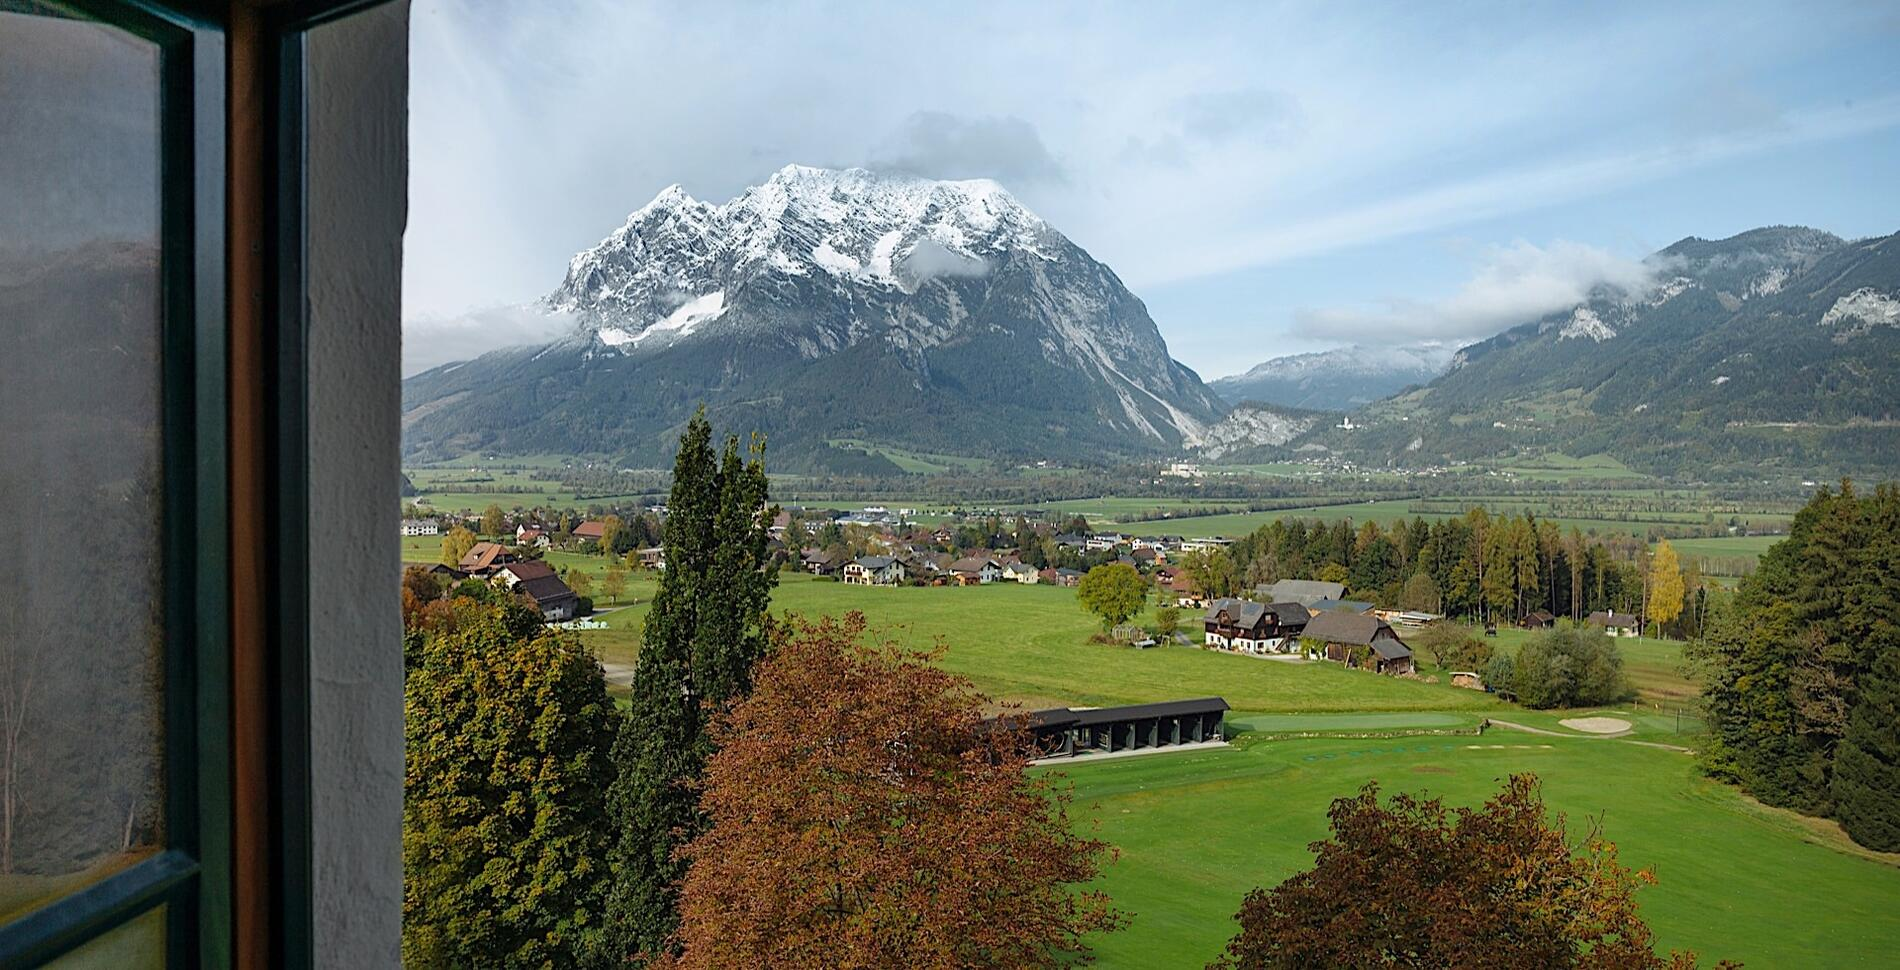 View from Romantik Hotel Schloss Pichlarn, Austria